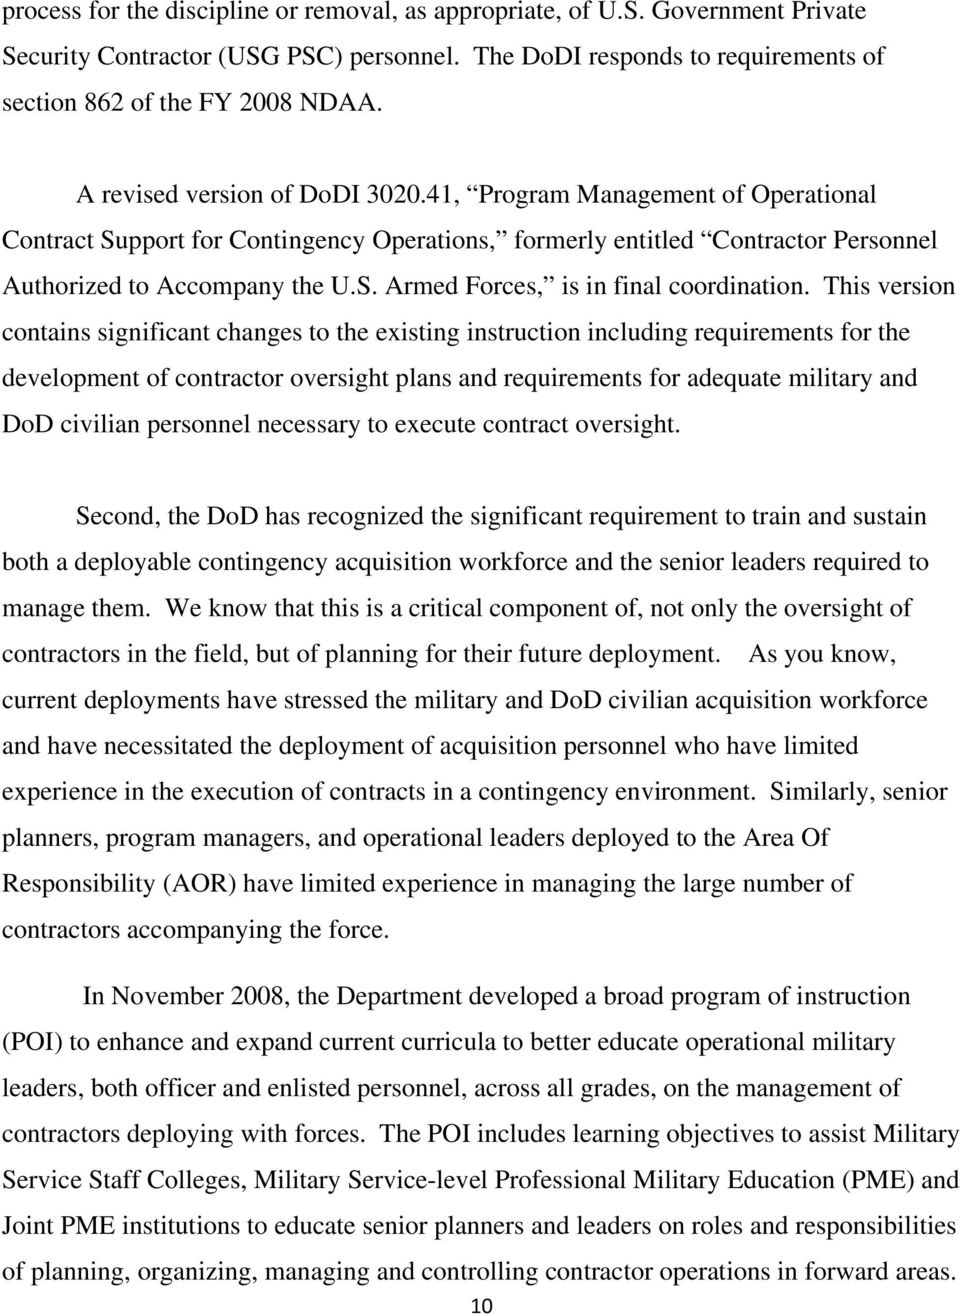 This version contains significant changes to the existing instruction including requirements for the development of contractor oversight plans and requirements for adequate military and DoD civilian